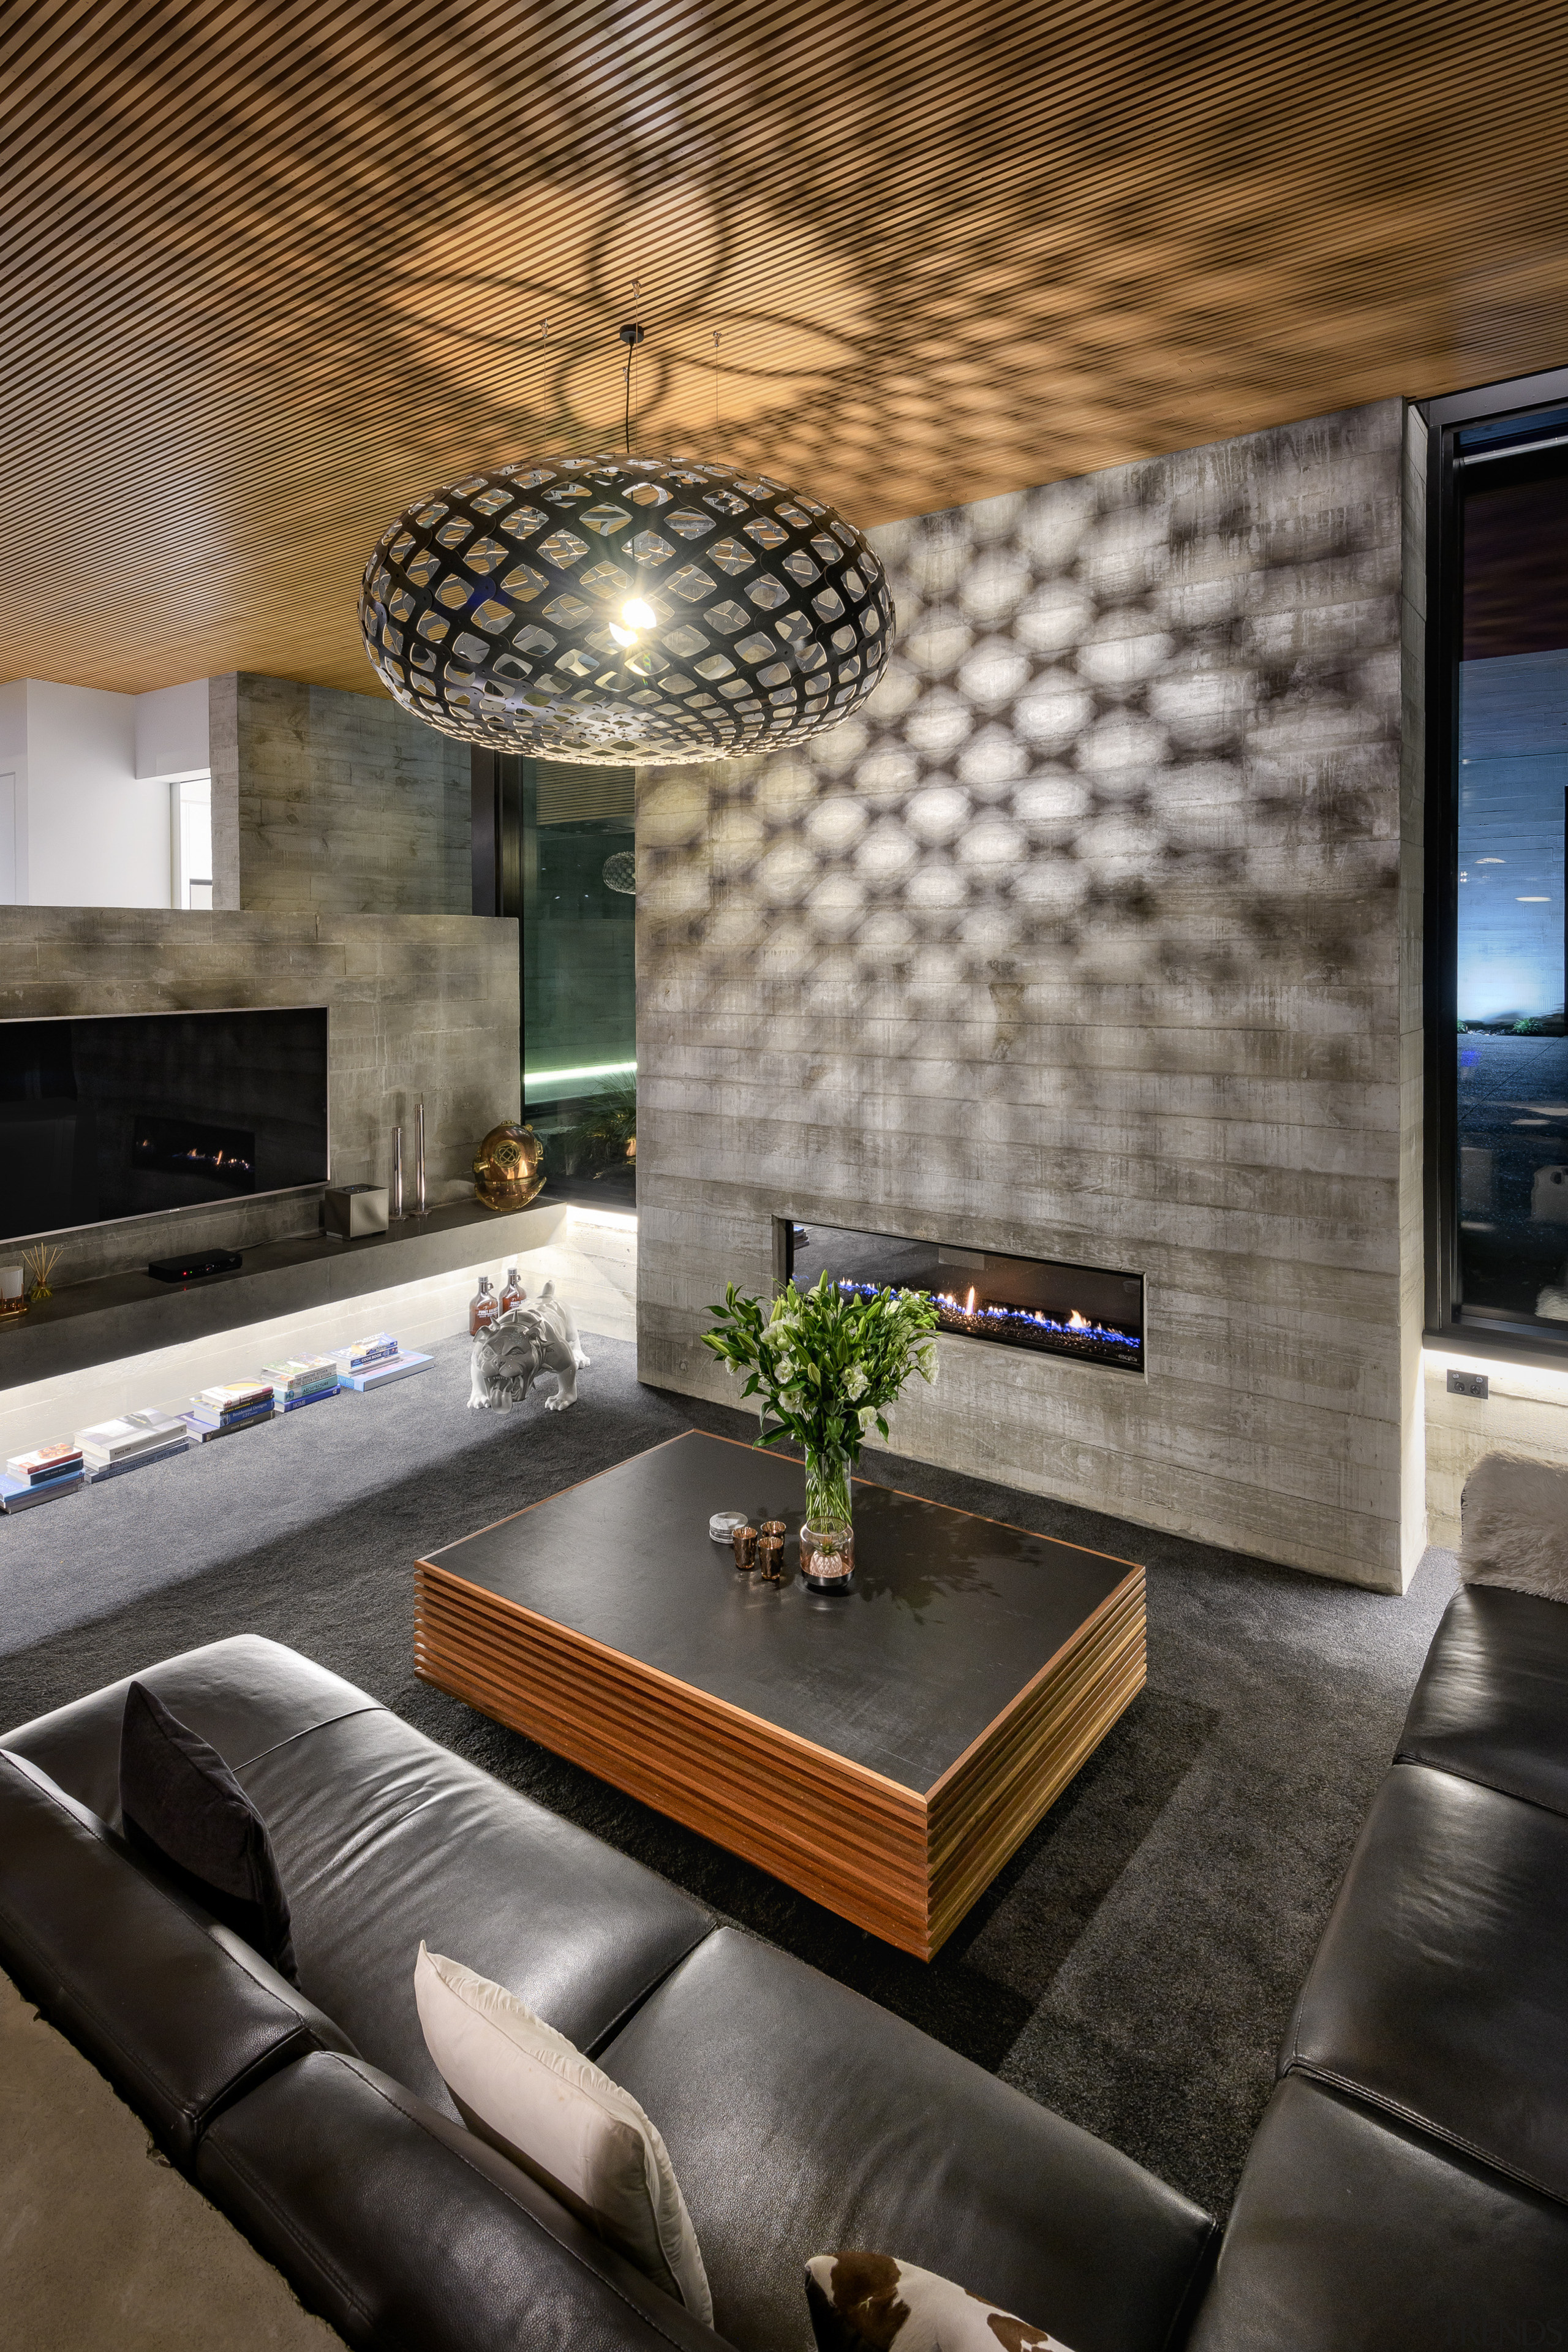 A designer lamp throws eye-catching patterns on the architecture, brick, building, ceiling, coffee table, design, floor, flooring, furniture, home, house, interior design, lighting, living room, property, real estate, room, table, tile, wall, gray, black